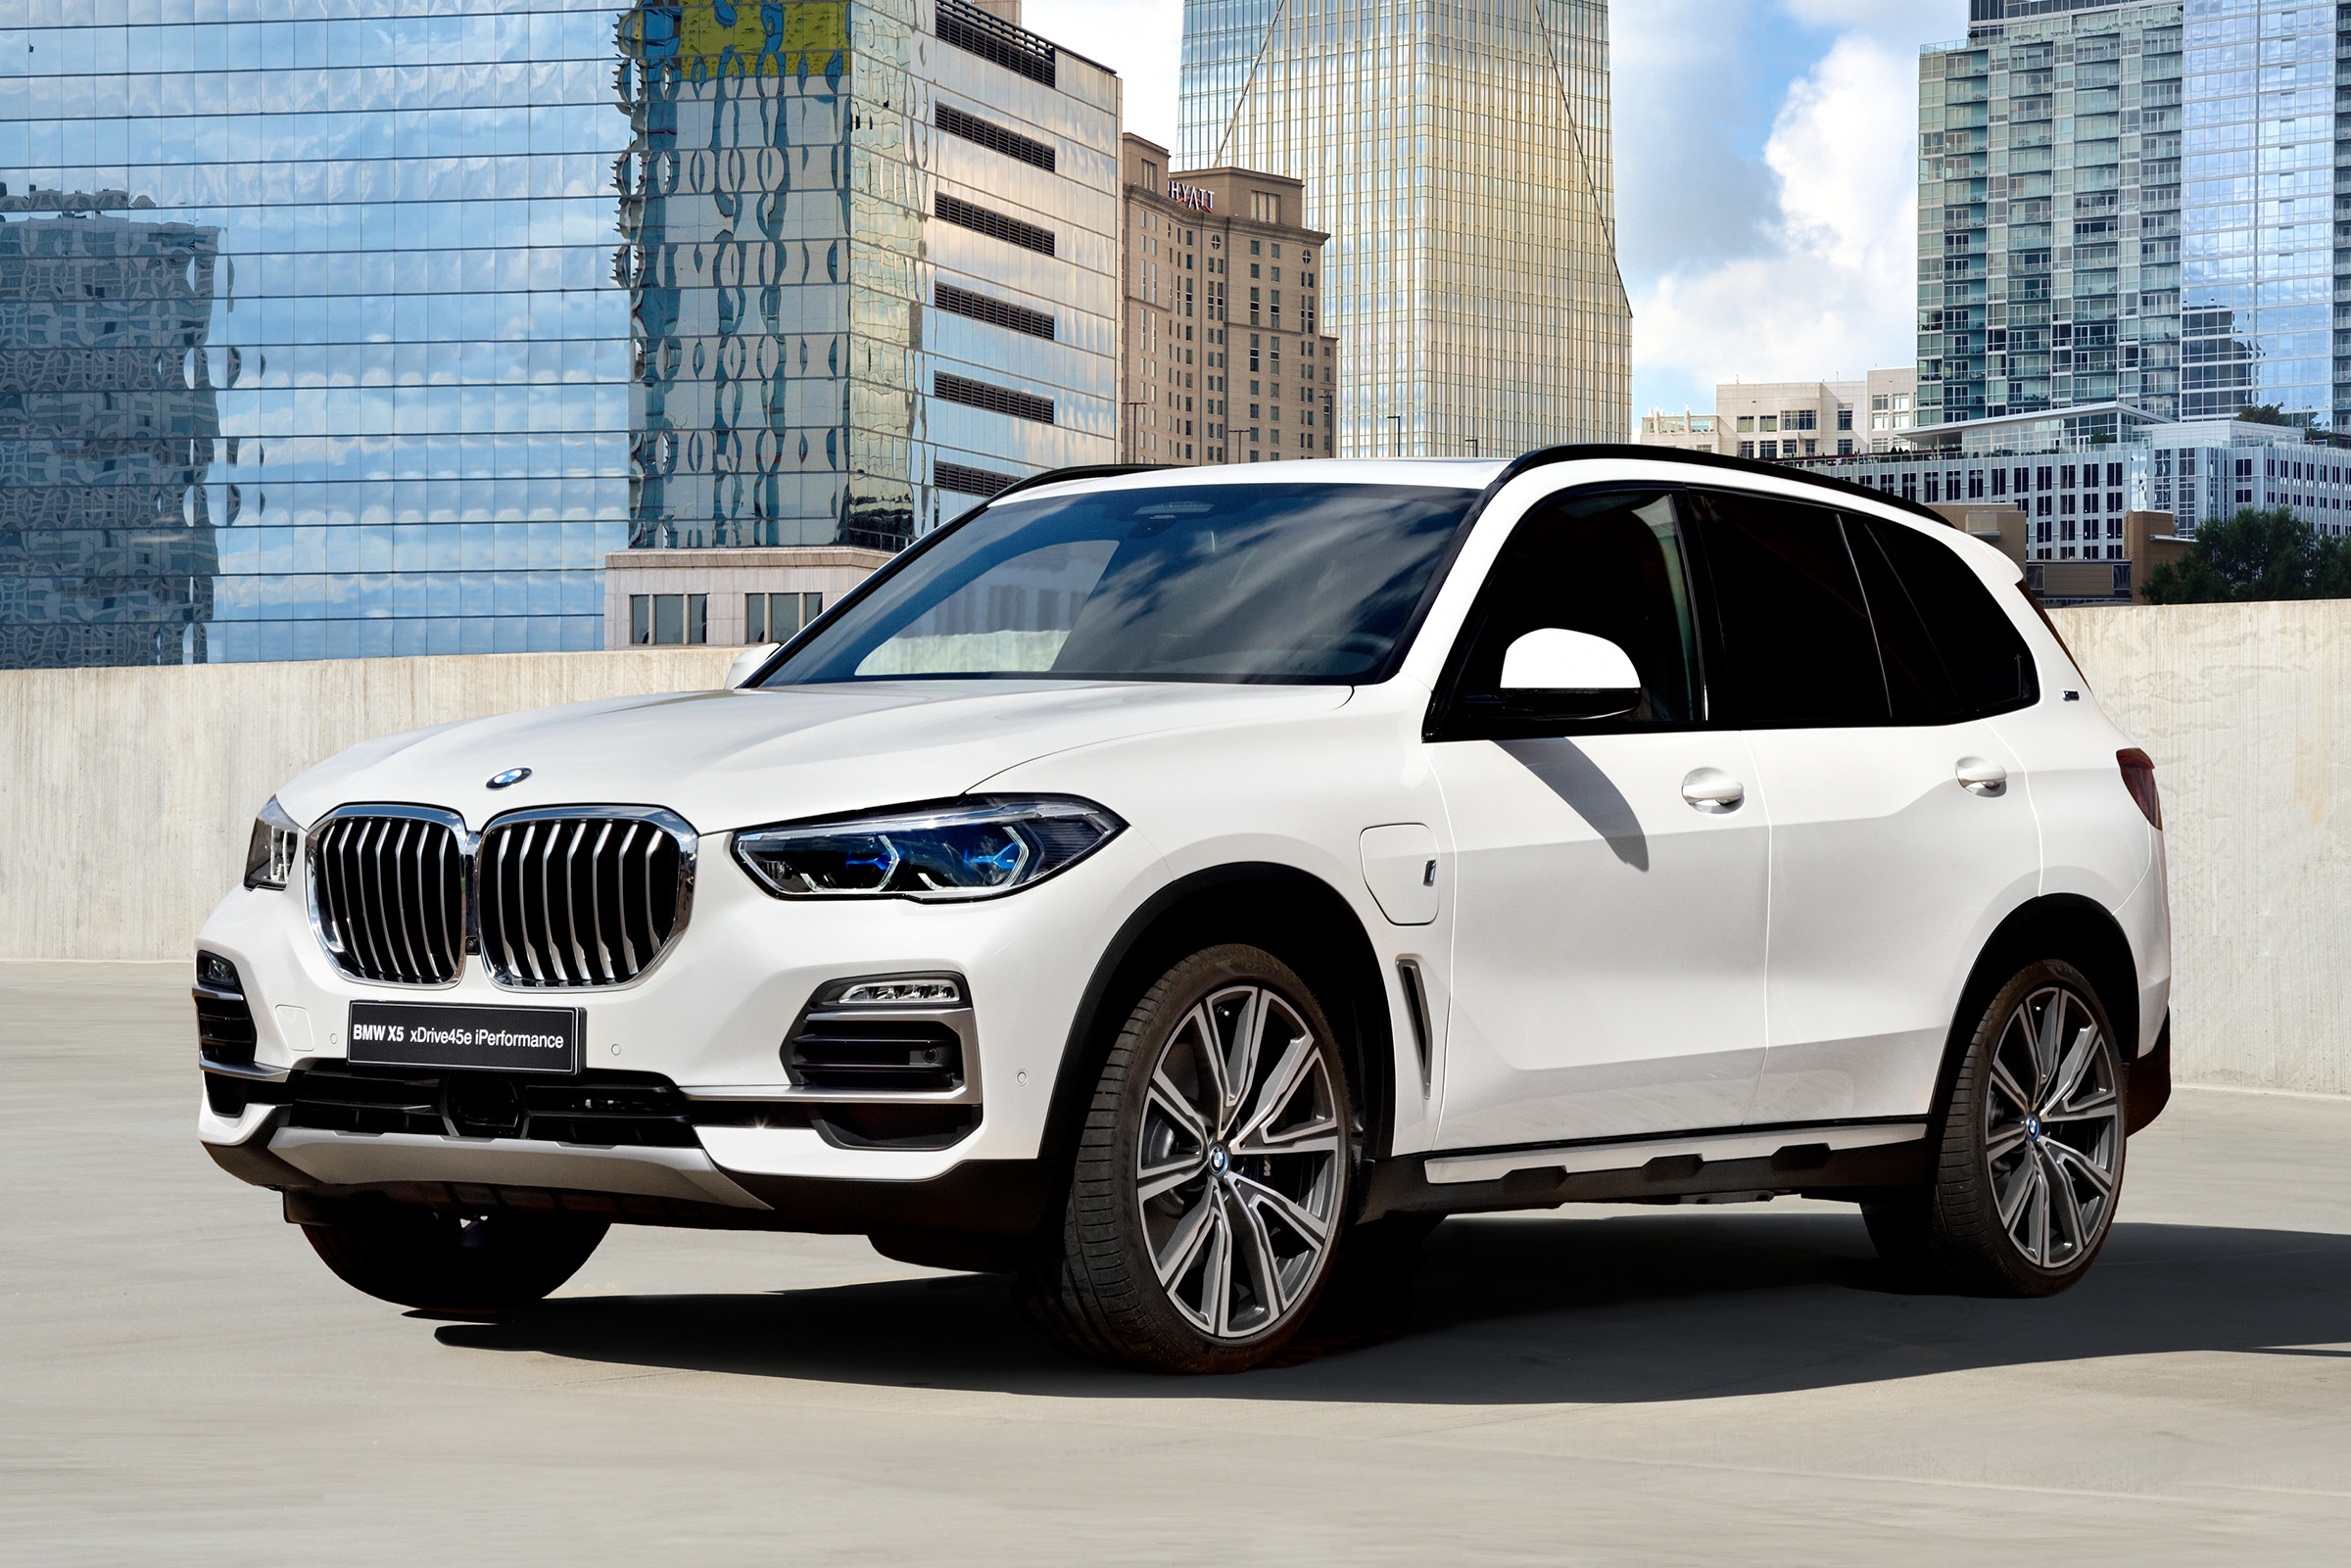 New Bmw X5 Xdrive 45e Plug In Hybrid 2019 Specs Price And On Sale Date Carbuyer